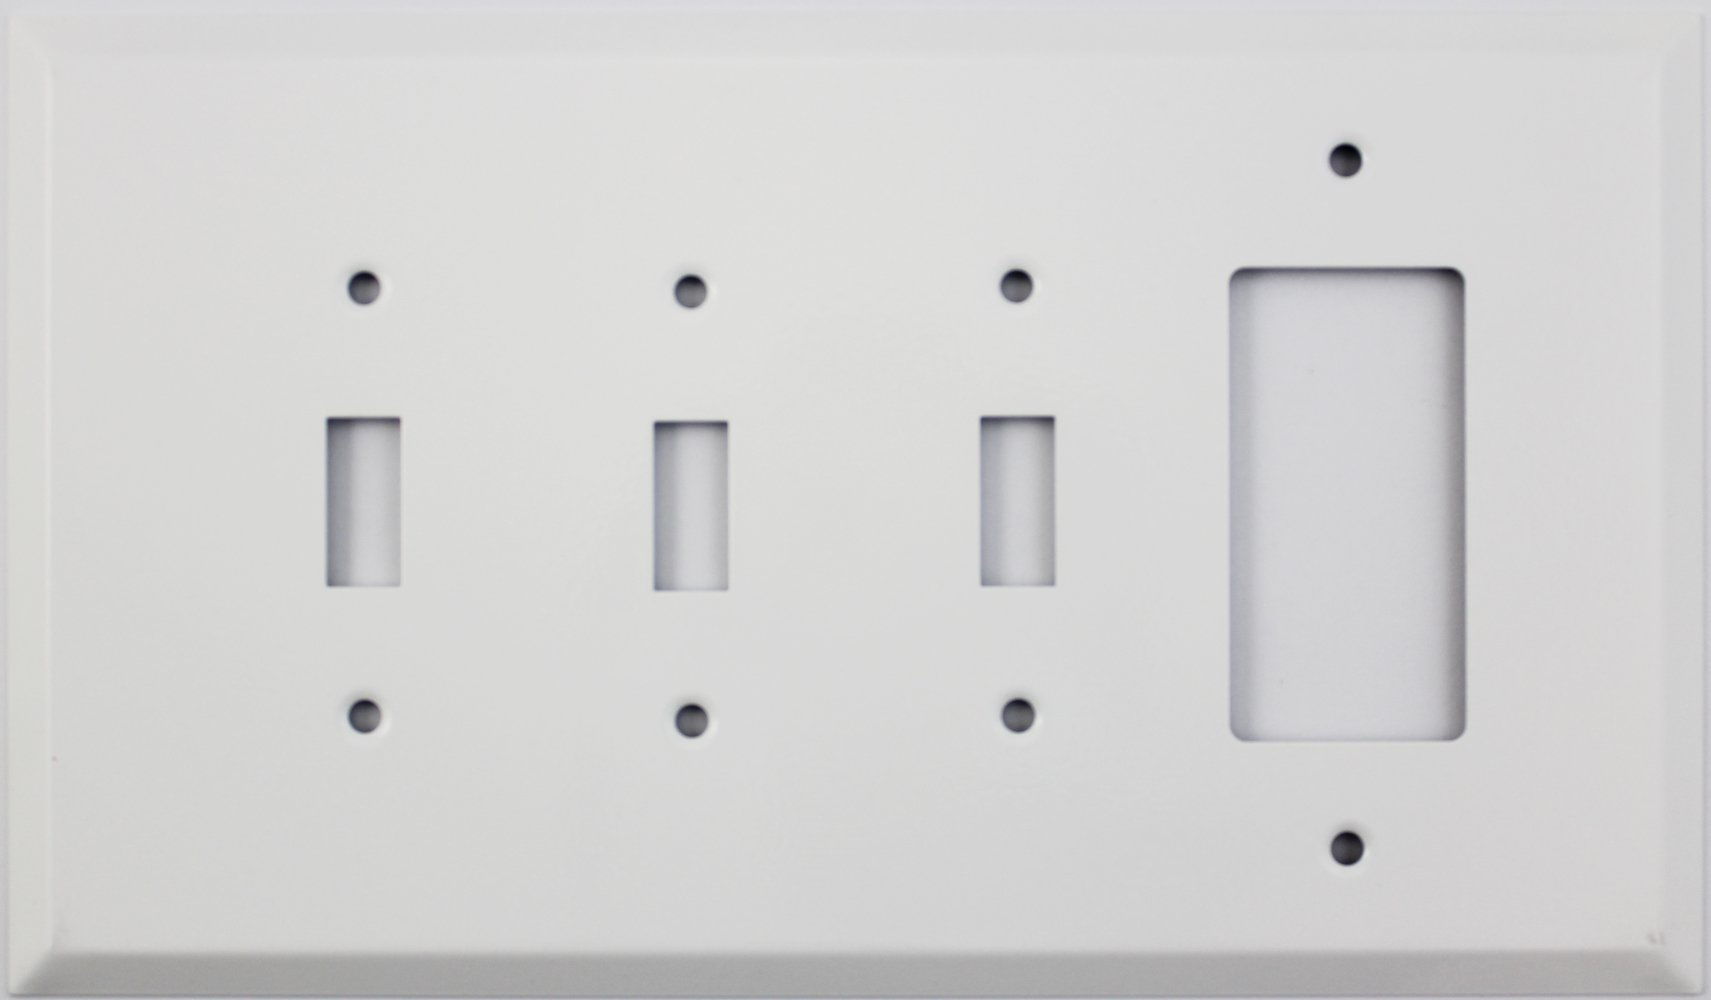 Oversized Smooth White Jumbo 4 Gang Combo Switch Plate - 3 Toggle Light Switch Openings 1 GFI Outlet/Rocker Switch Opening